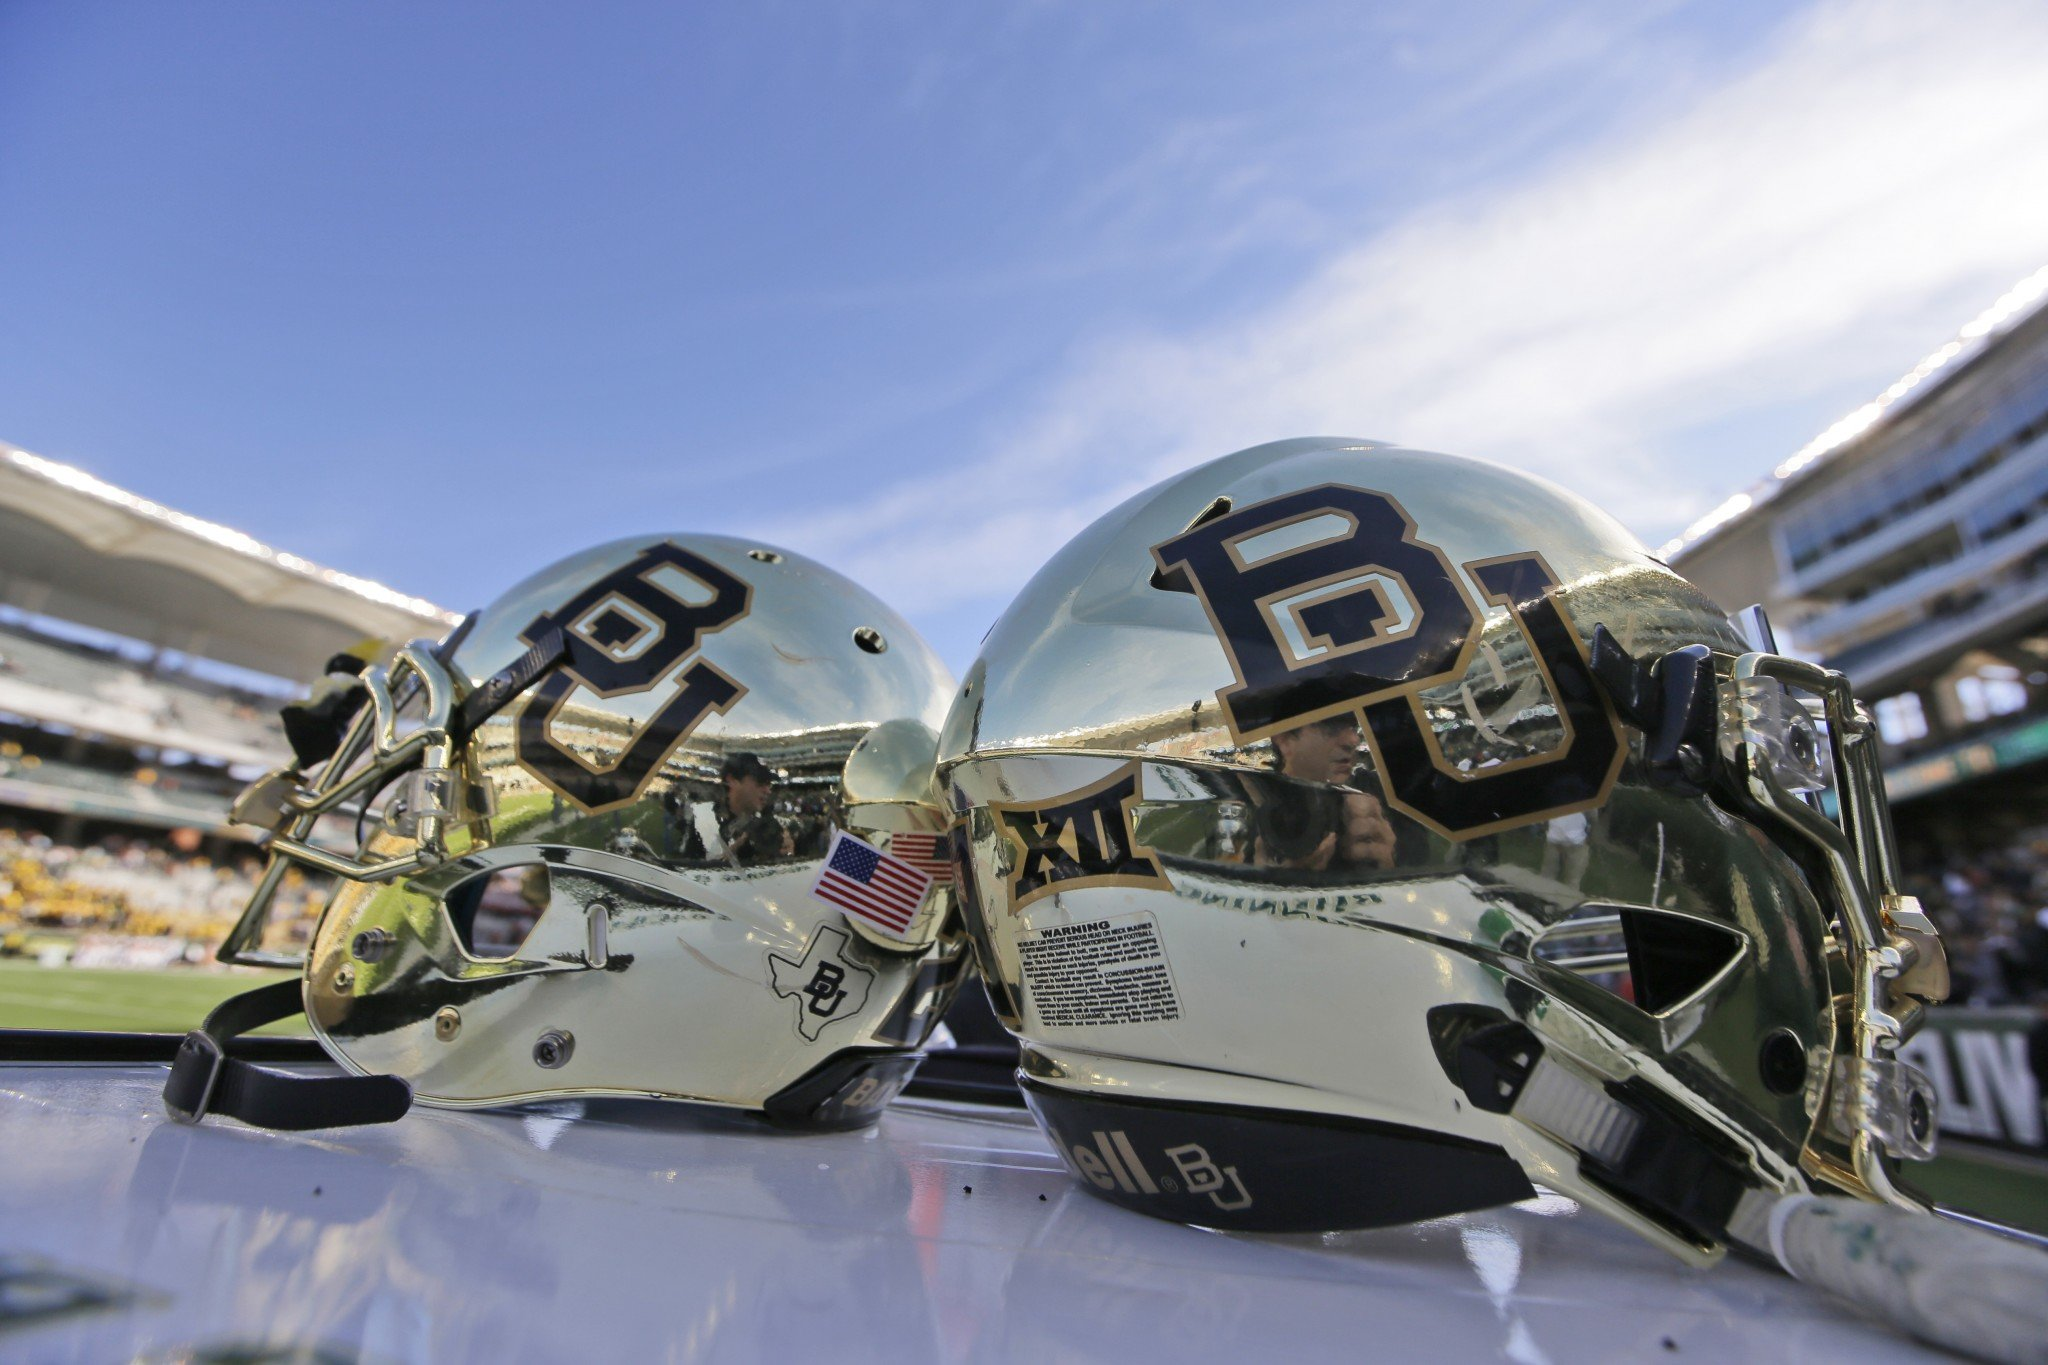 Two women who reported being gang raped by football players, have settled with the school. (AP Photo/LM Otero, File)